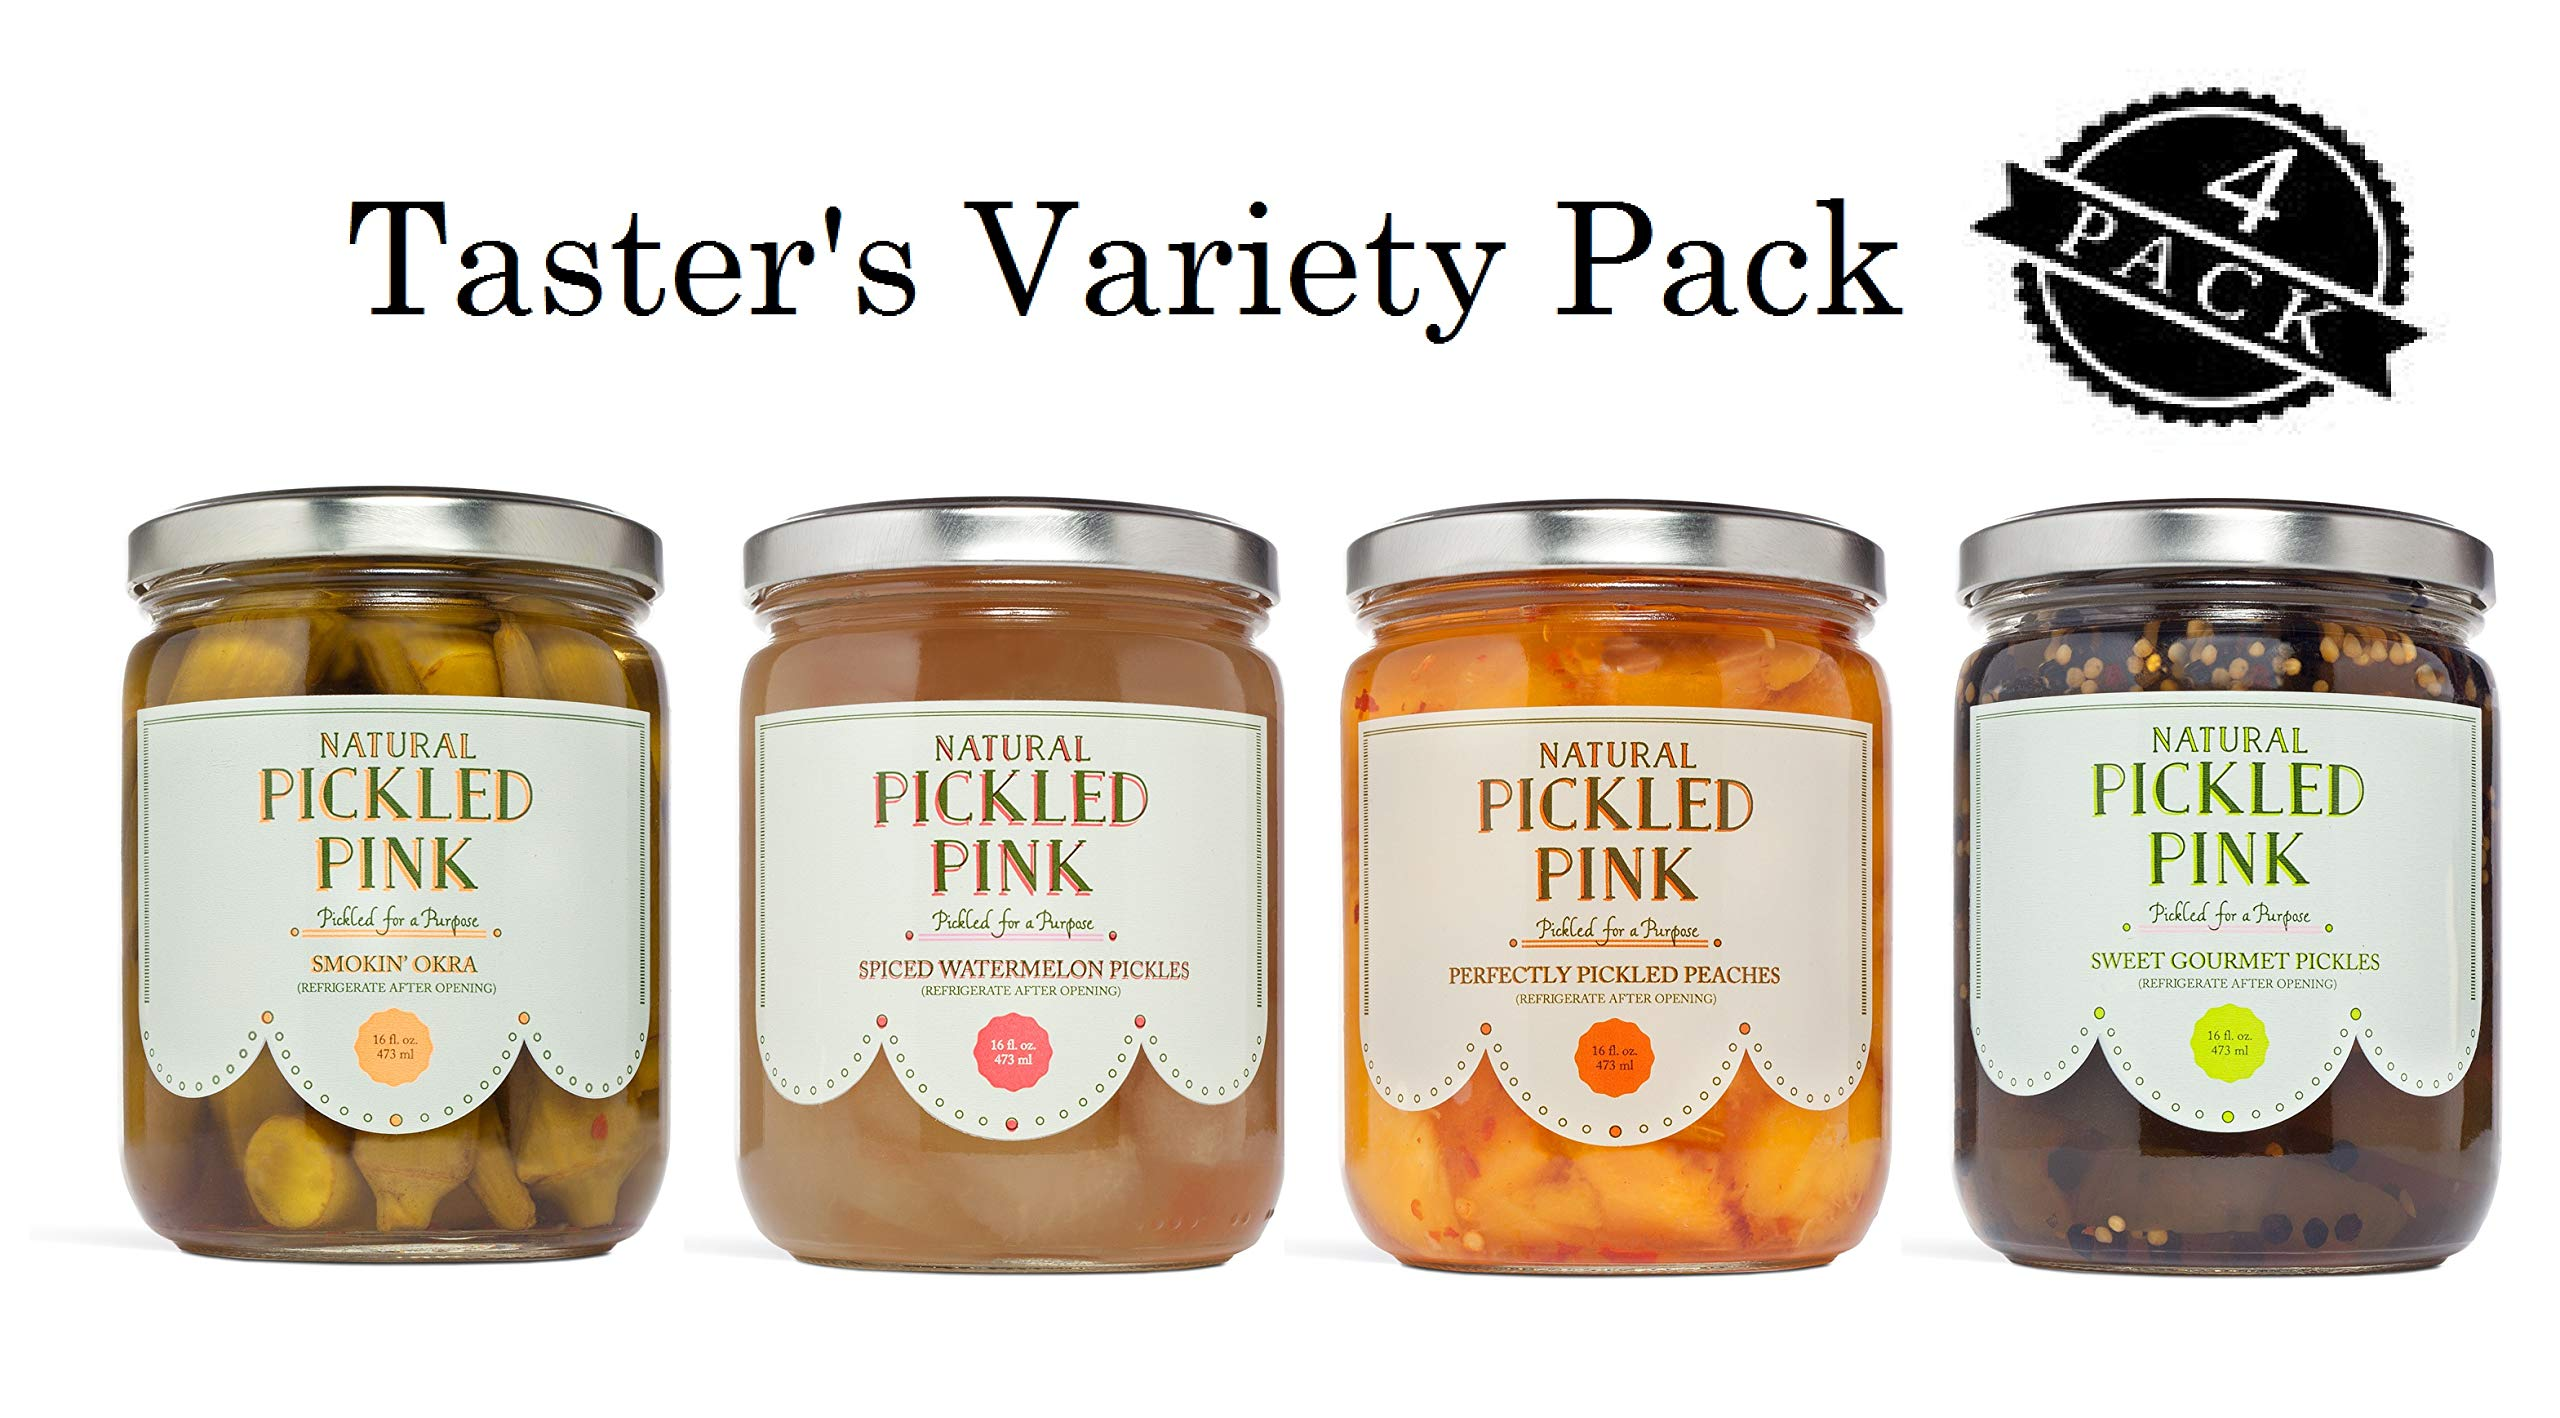 Pickled Pink Taster's Variety Pack - Sweet Gourmet Pickles, Perfectly Pickled Peaches, Spiced Watermelon Pickles, Smokin' Okra (16 oz Jar x 4); Gourmet Artisan-Crafted and All-Natural by Pickled Pink